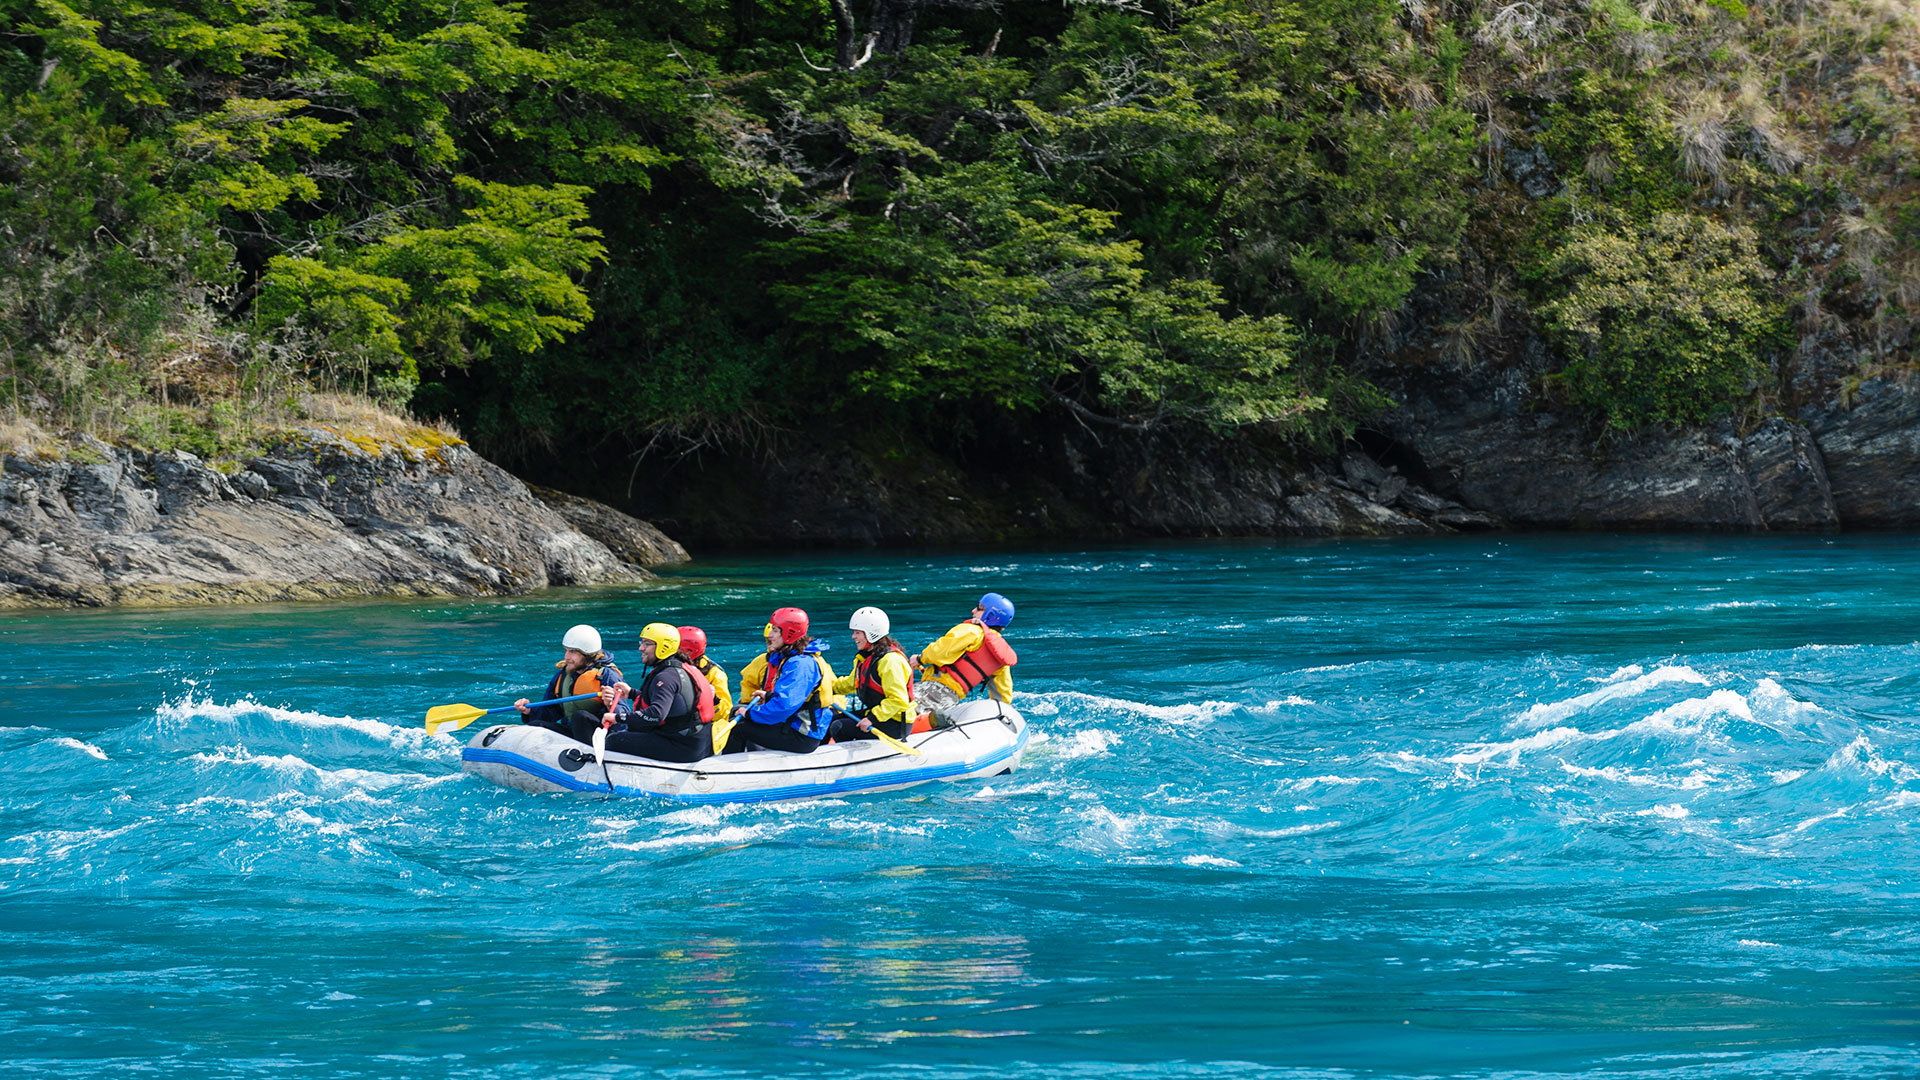 Rafting on the Baker River in the Aysen Region, Chile